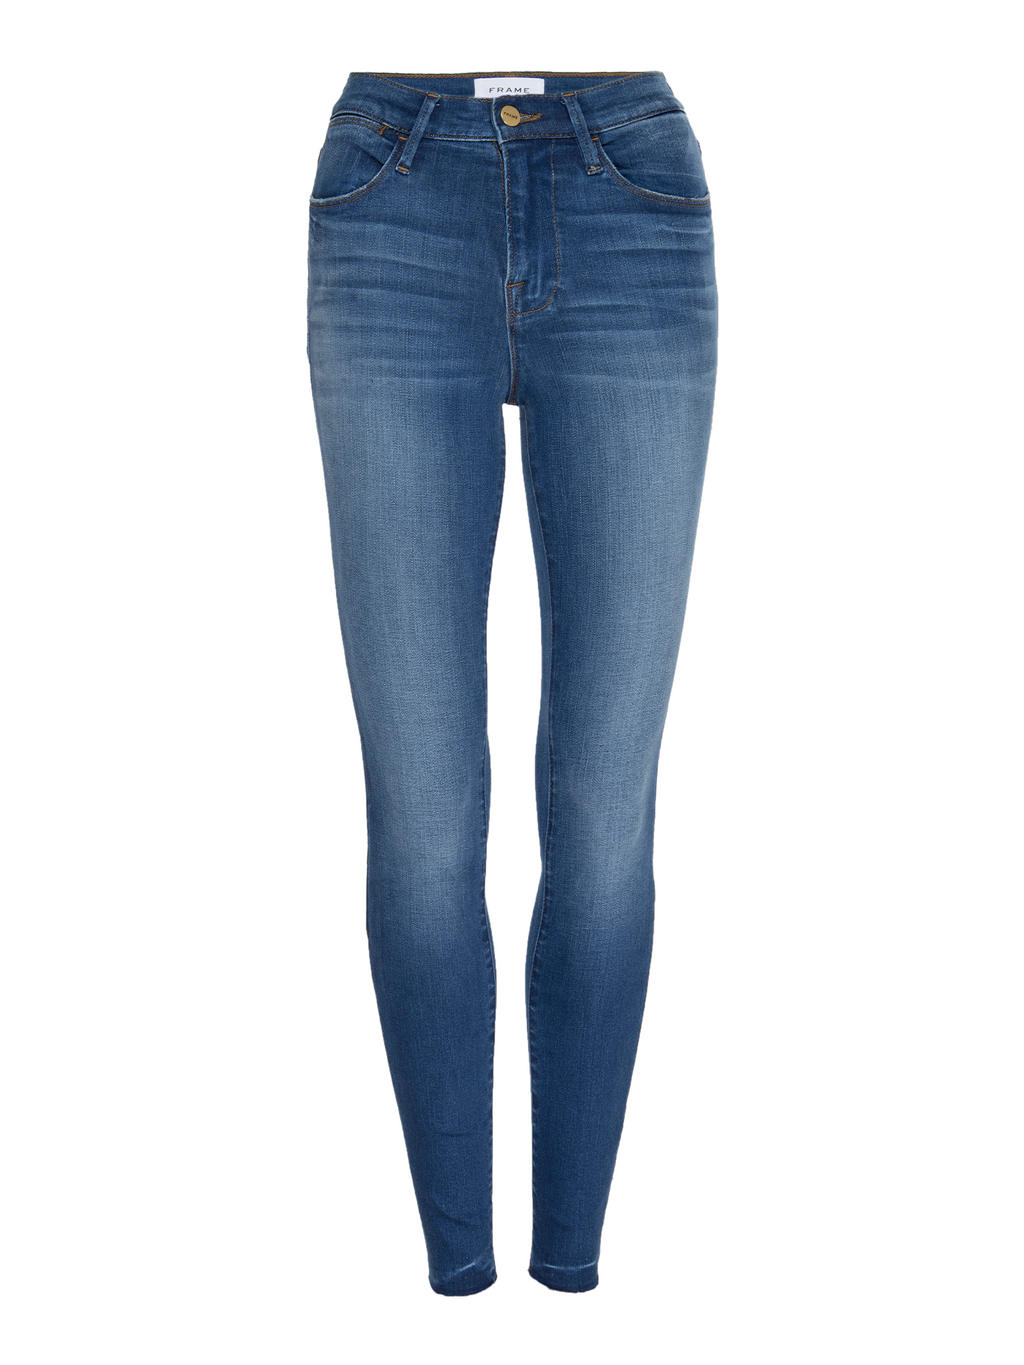 Frame Le High Skinny Raw Edge Jean - Ambrose